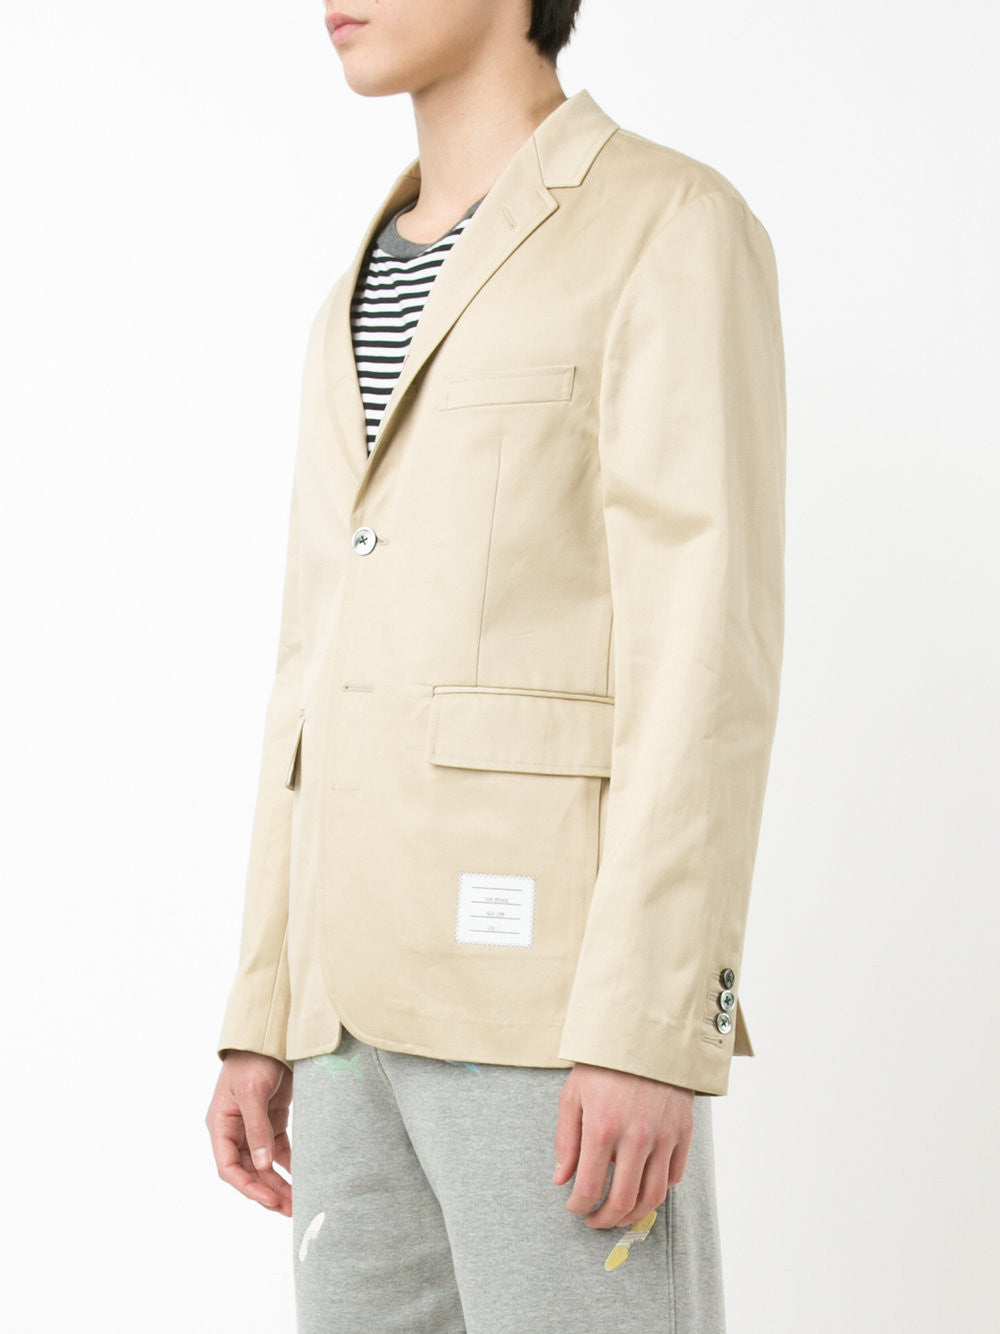 Cotton-Twill Blazer | MJU426A-01443 250